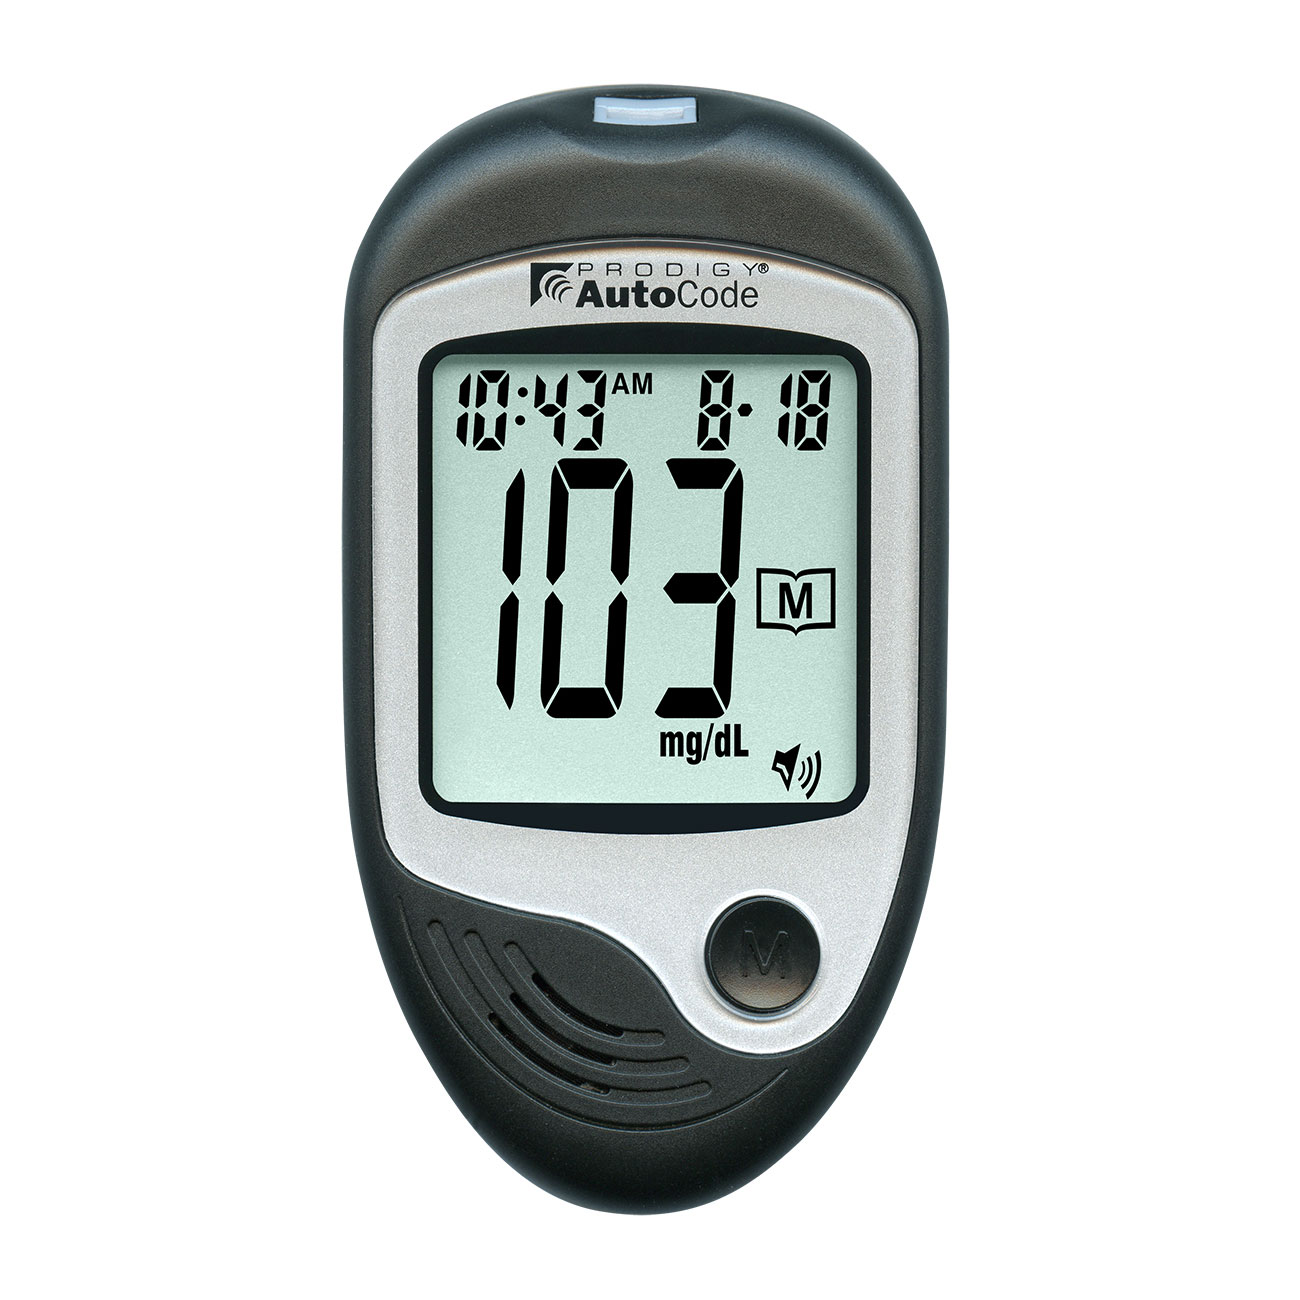 Prodigy AutoCode Talking Blood Glucose Monitoring Kit- Bilingual - English or Spanish